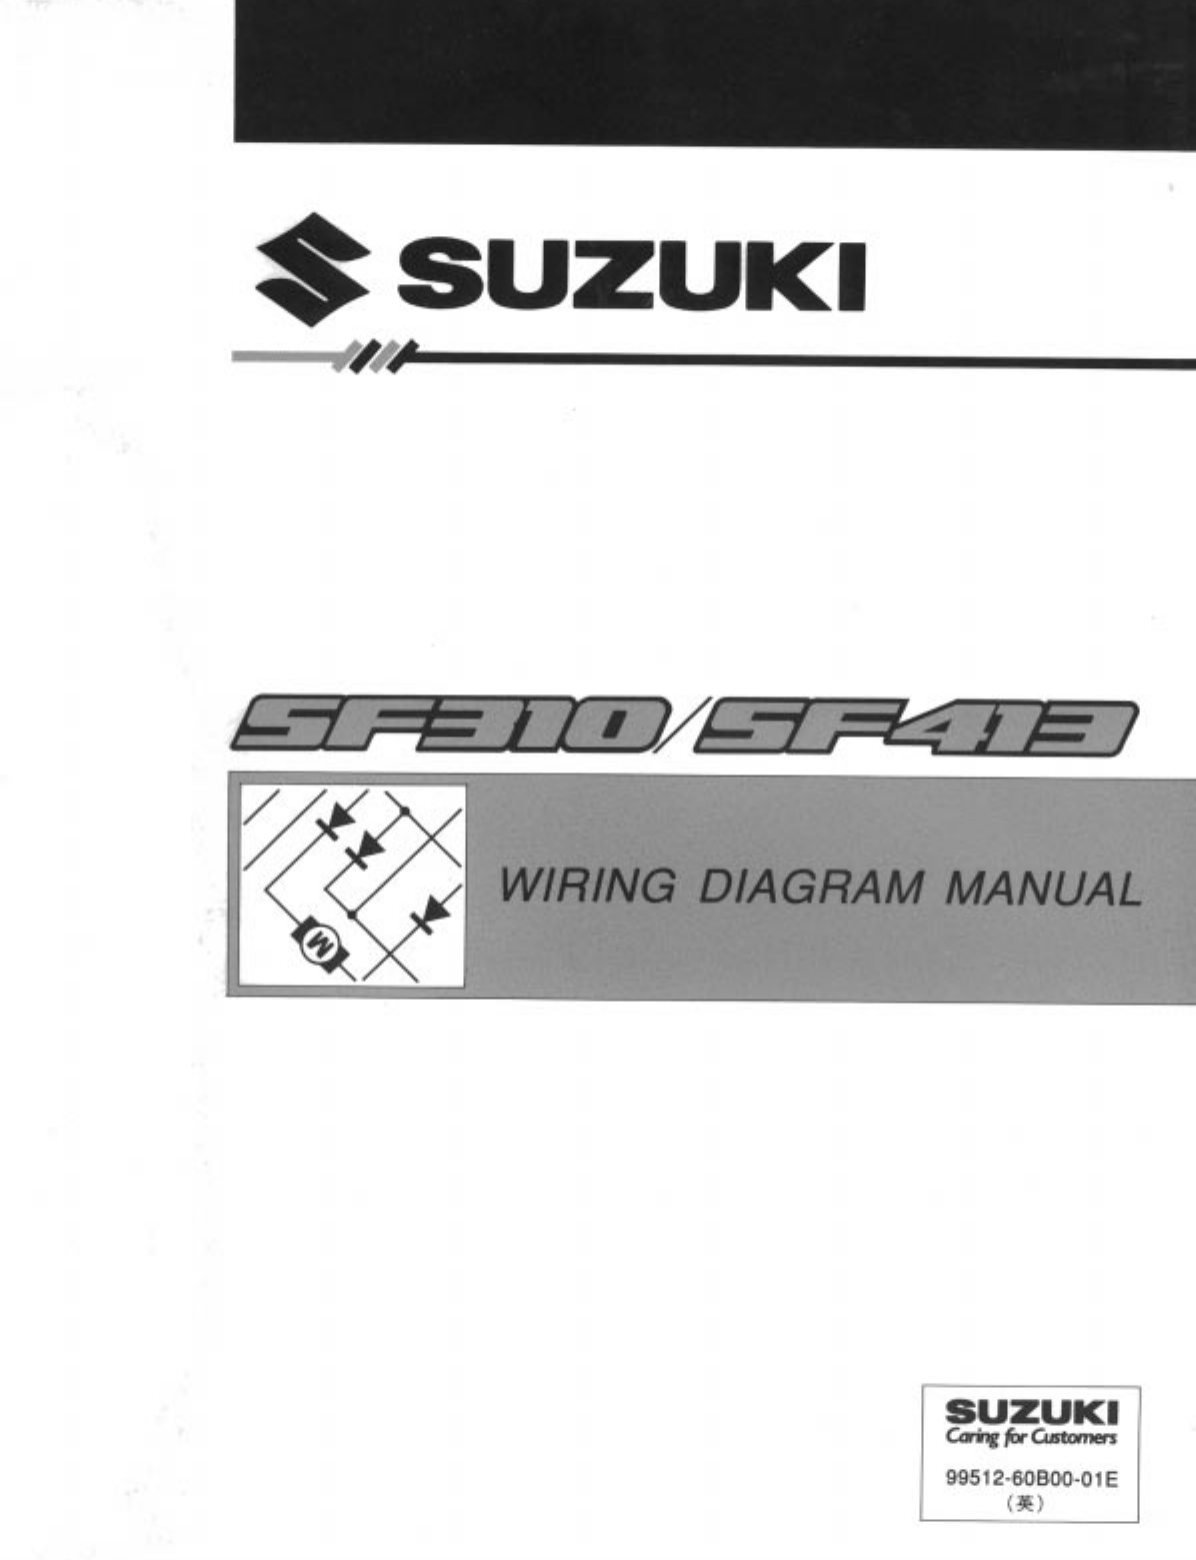 Suzuki Swift Workshop Manual Pdf Air Conditioner Schematic Wiring Diagram Gti G10 Online